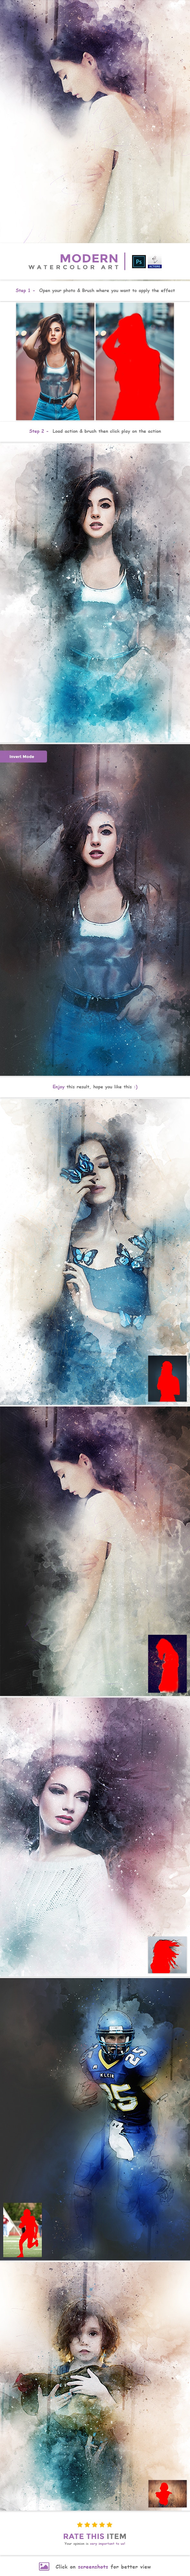 Modern Watercolor Art - PS Action - Photo Effects Actions